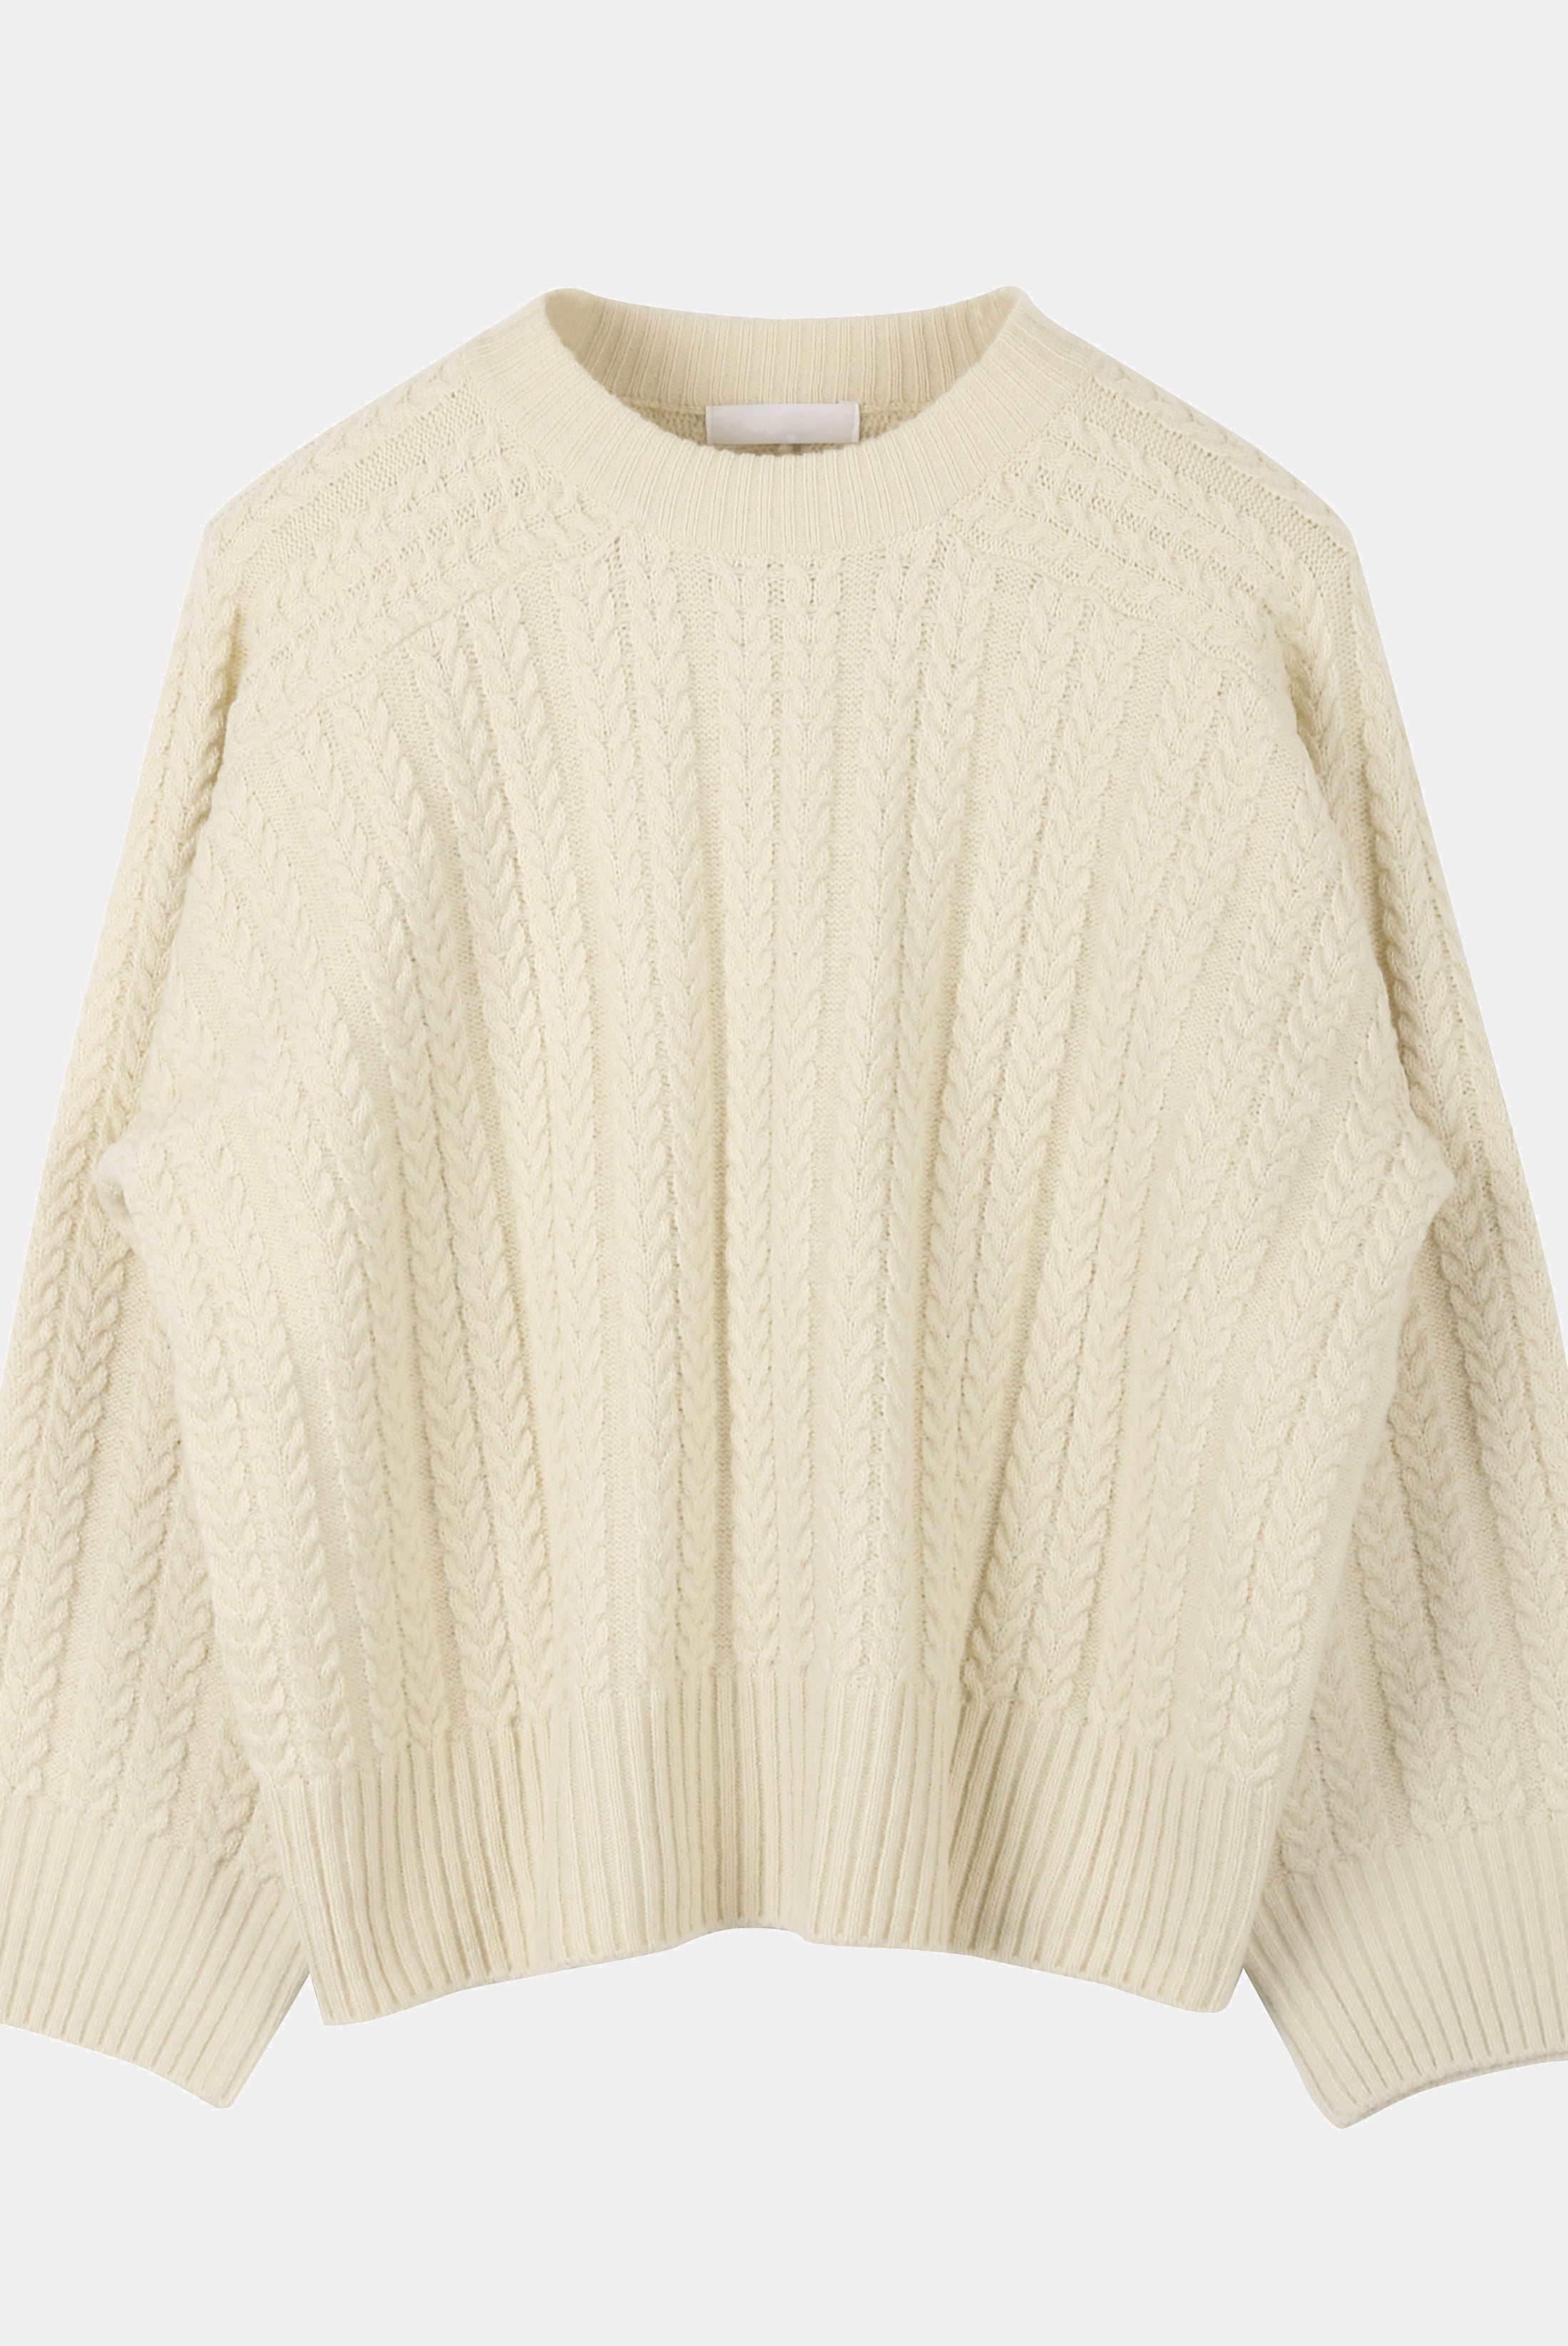 (W) Stay Twist_Knitwear